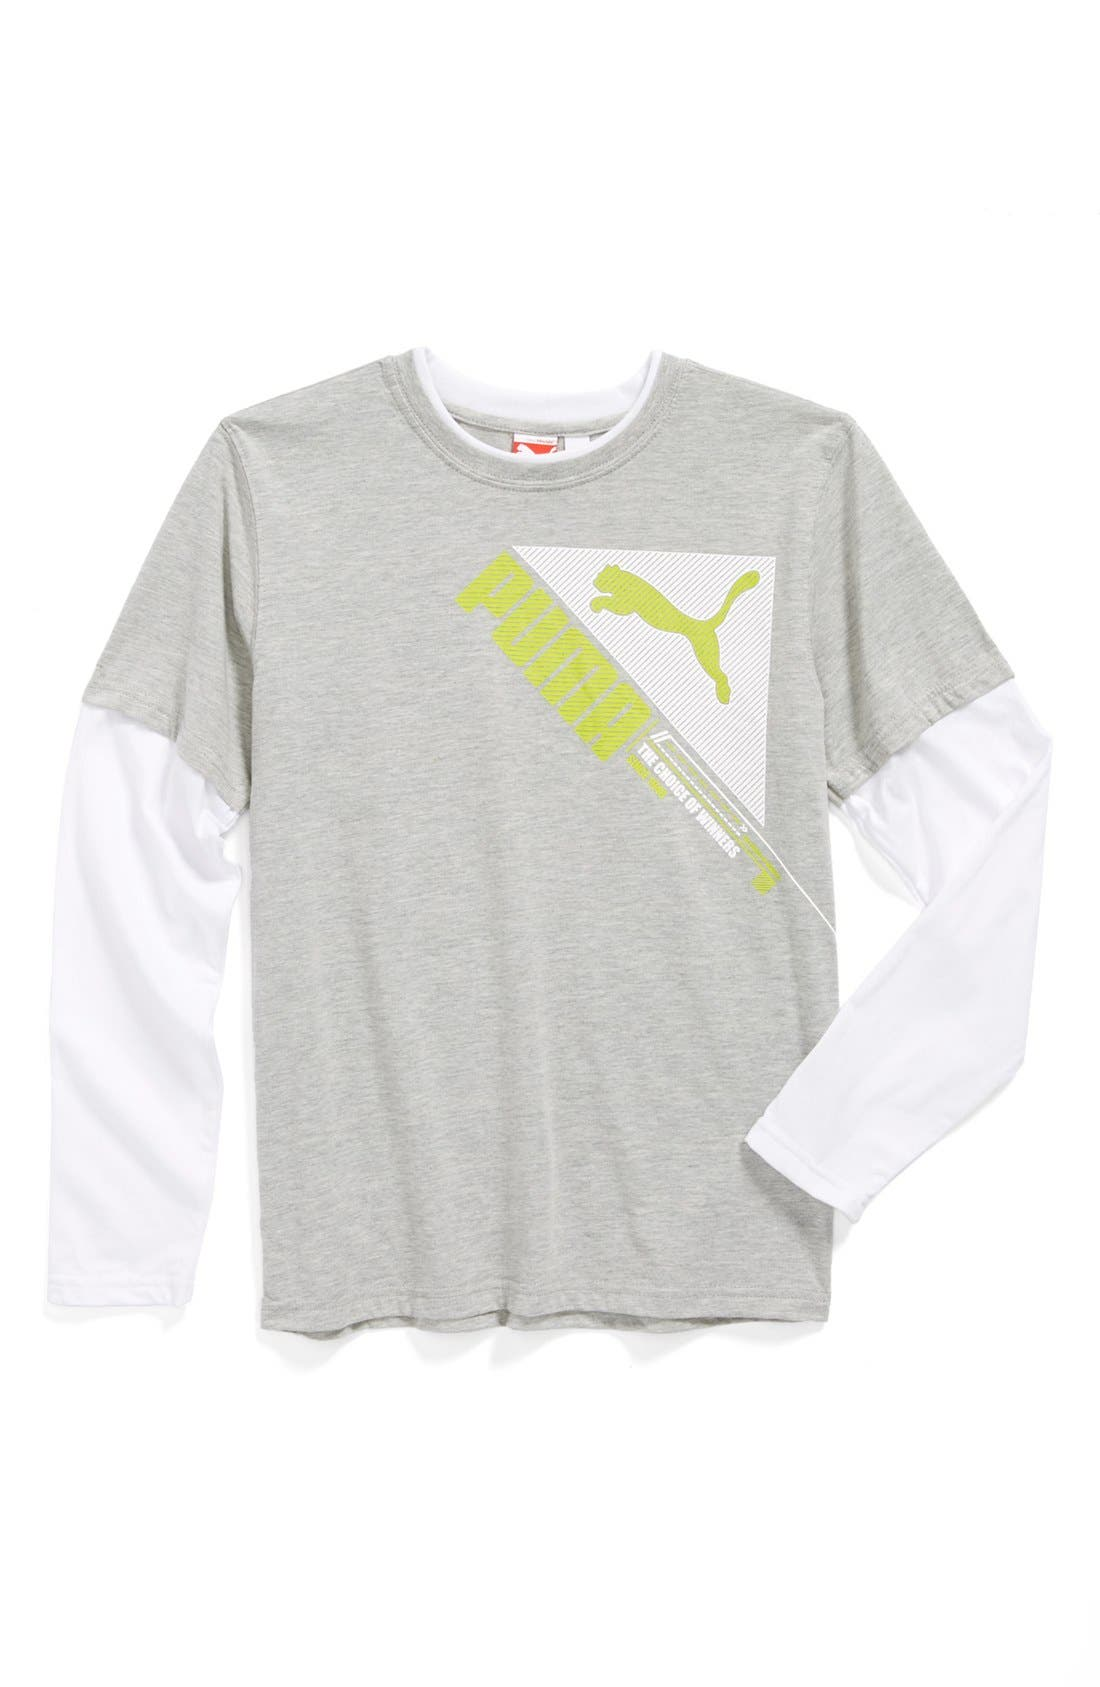 Alternate Image 1 Selected - PUMA 'Winners' T-Shirt (Little Boys)